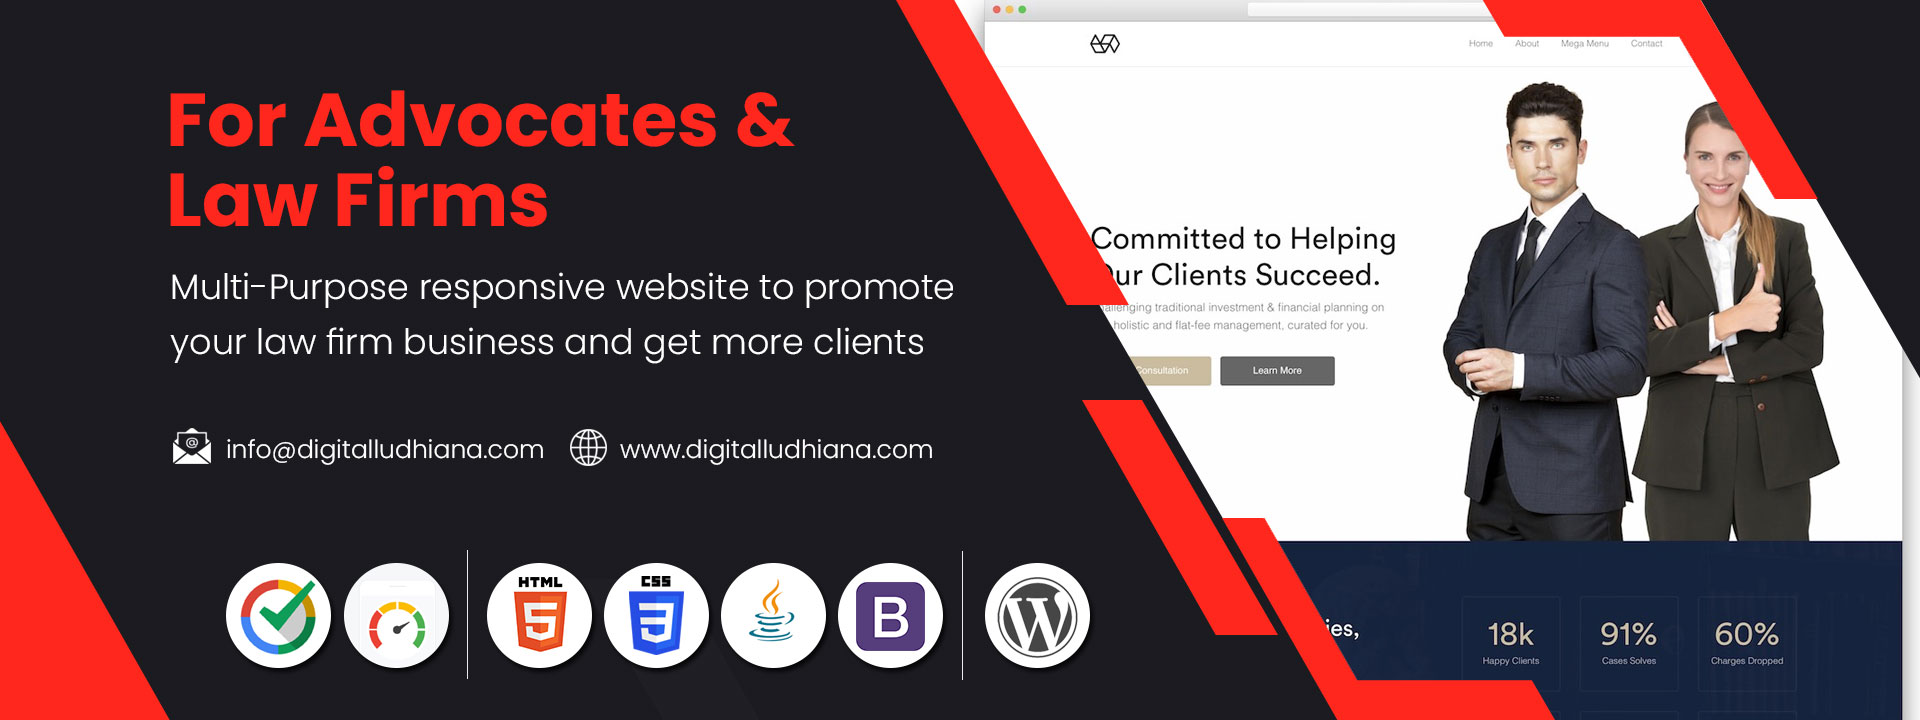 lawyer advocates law firms business website designing company in ludhiana punjab india